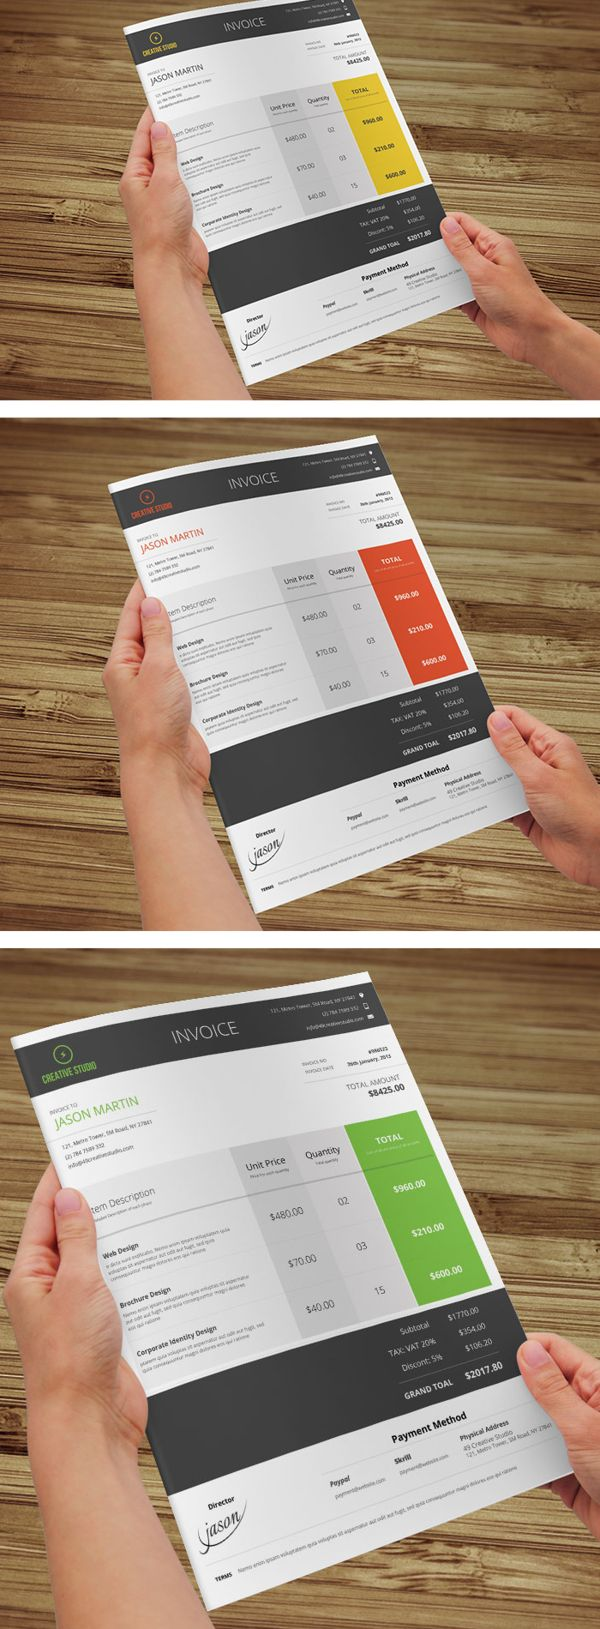 Tacoma Invoice Price Pdf Best  Invoice Sample Ideas On Pinterest  Invoice Example Http  What Is Invoice Finance with Fruit Cake Receipt Word  Creative Invoice Template Designs Acknowledgement Letter Of Receipt Excel